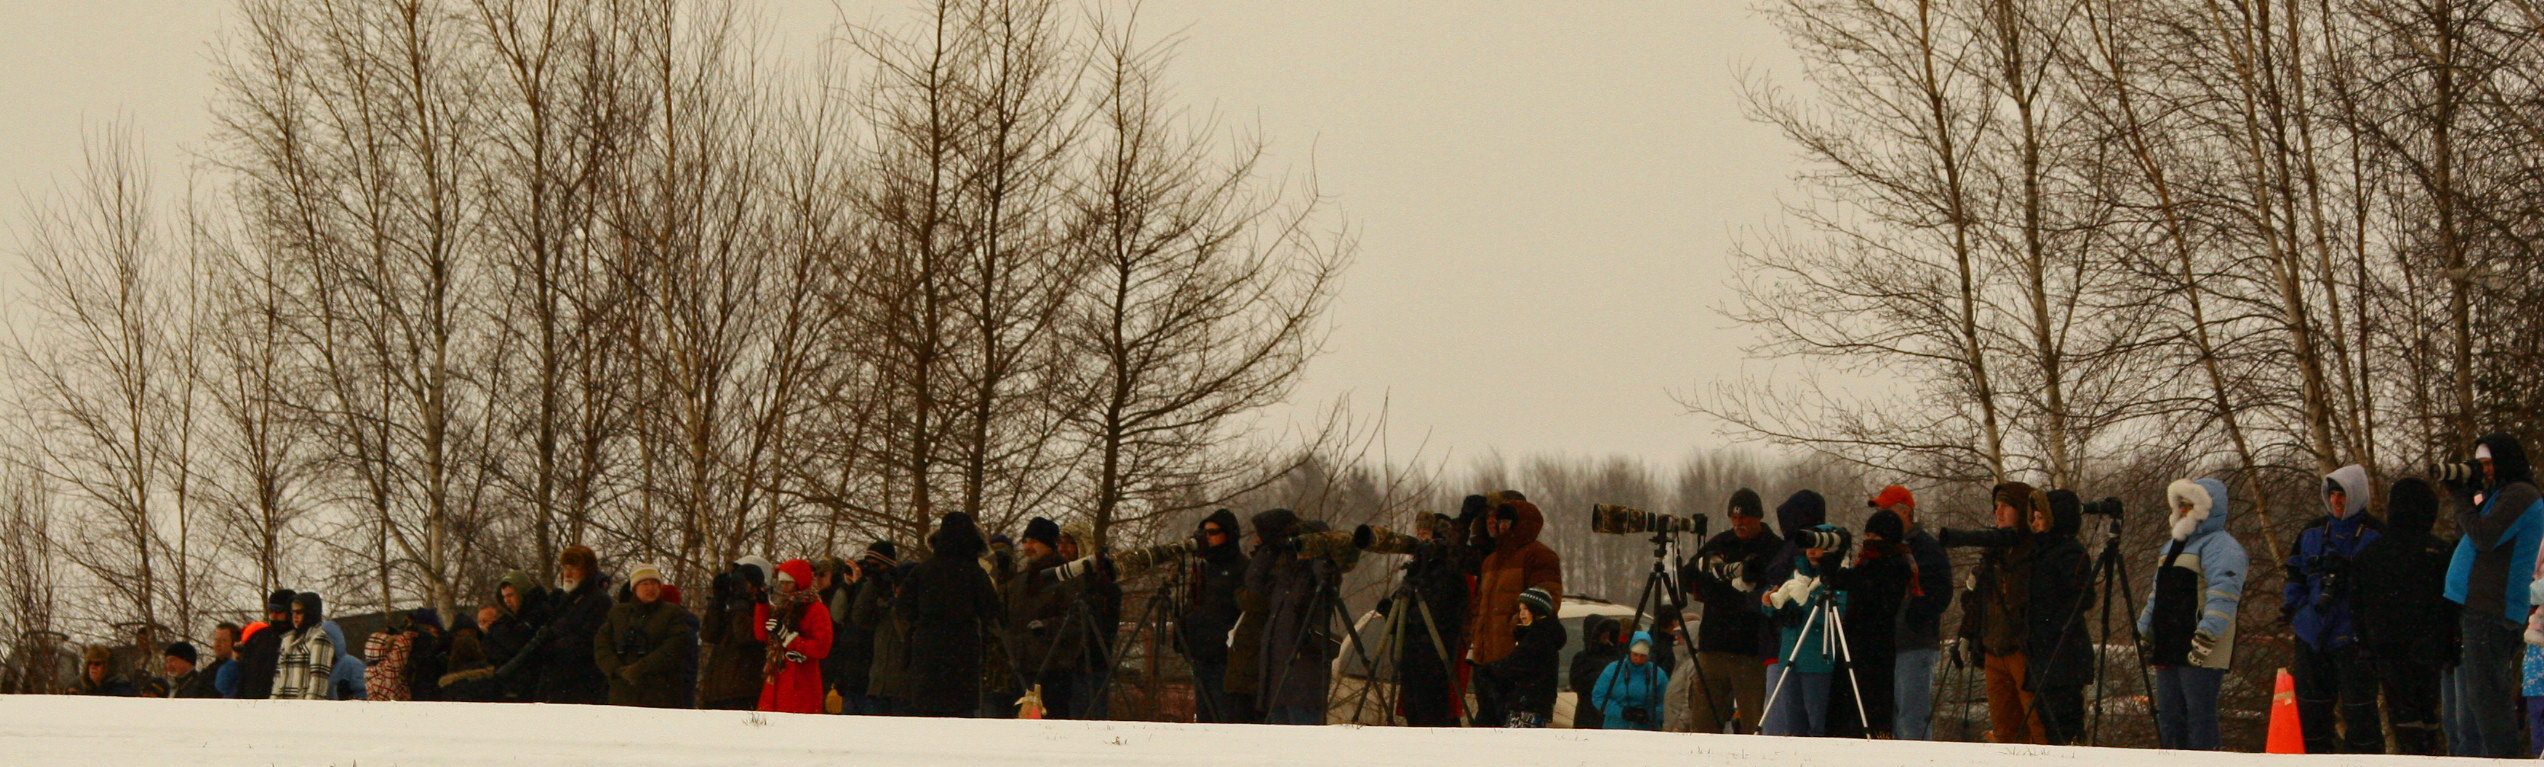 Eagle watchers at 2012 Eagle watch